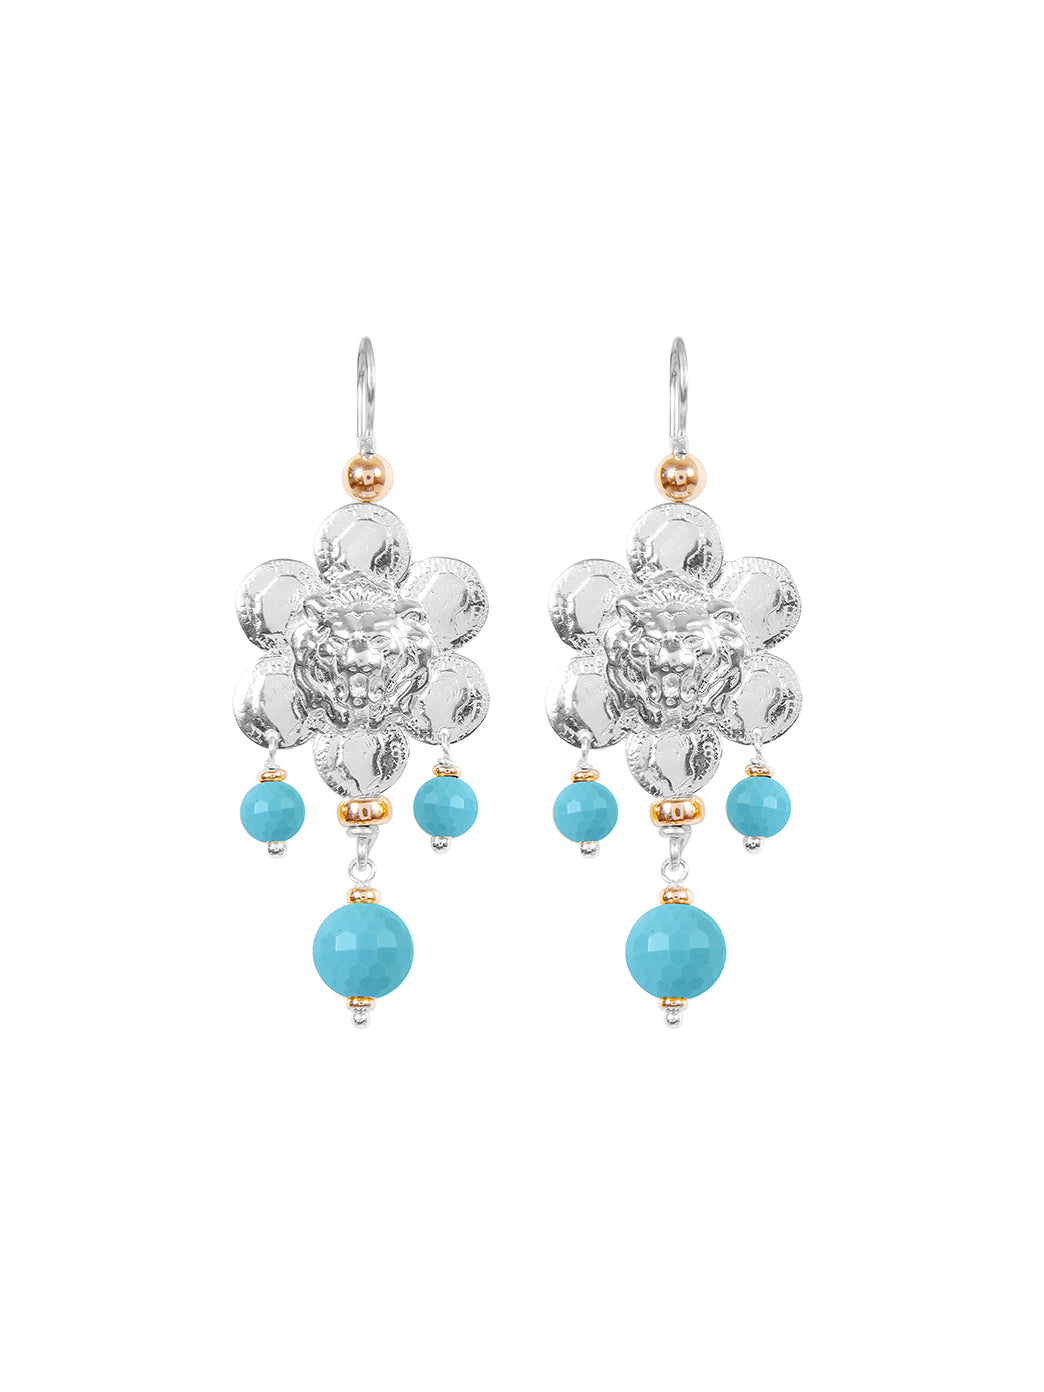 Fiorina Jewellery Giardini Earrings Turquoise